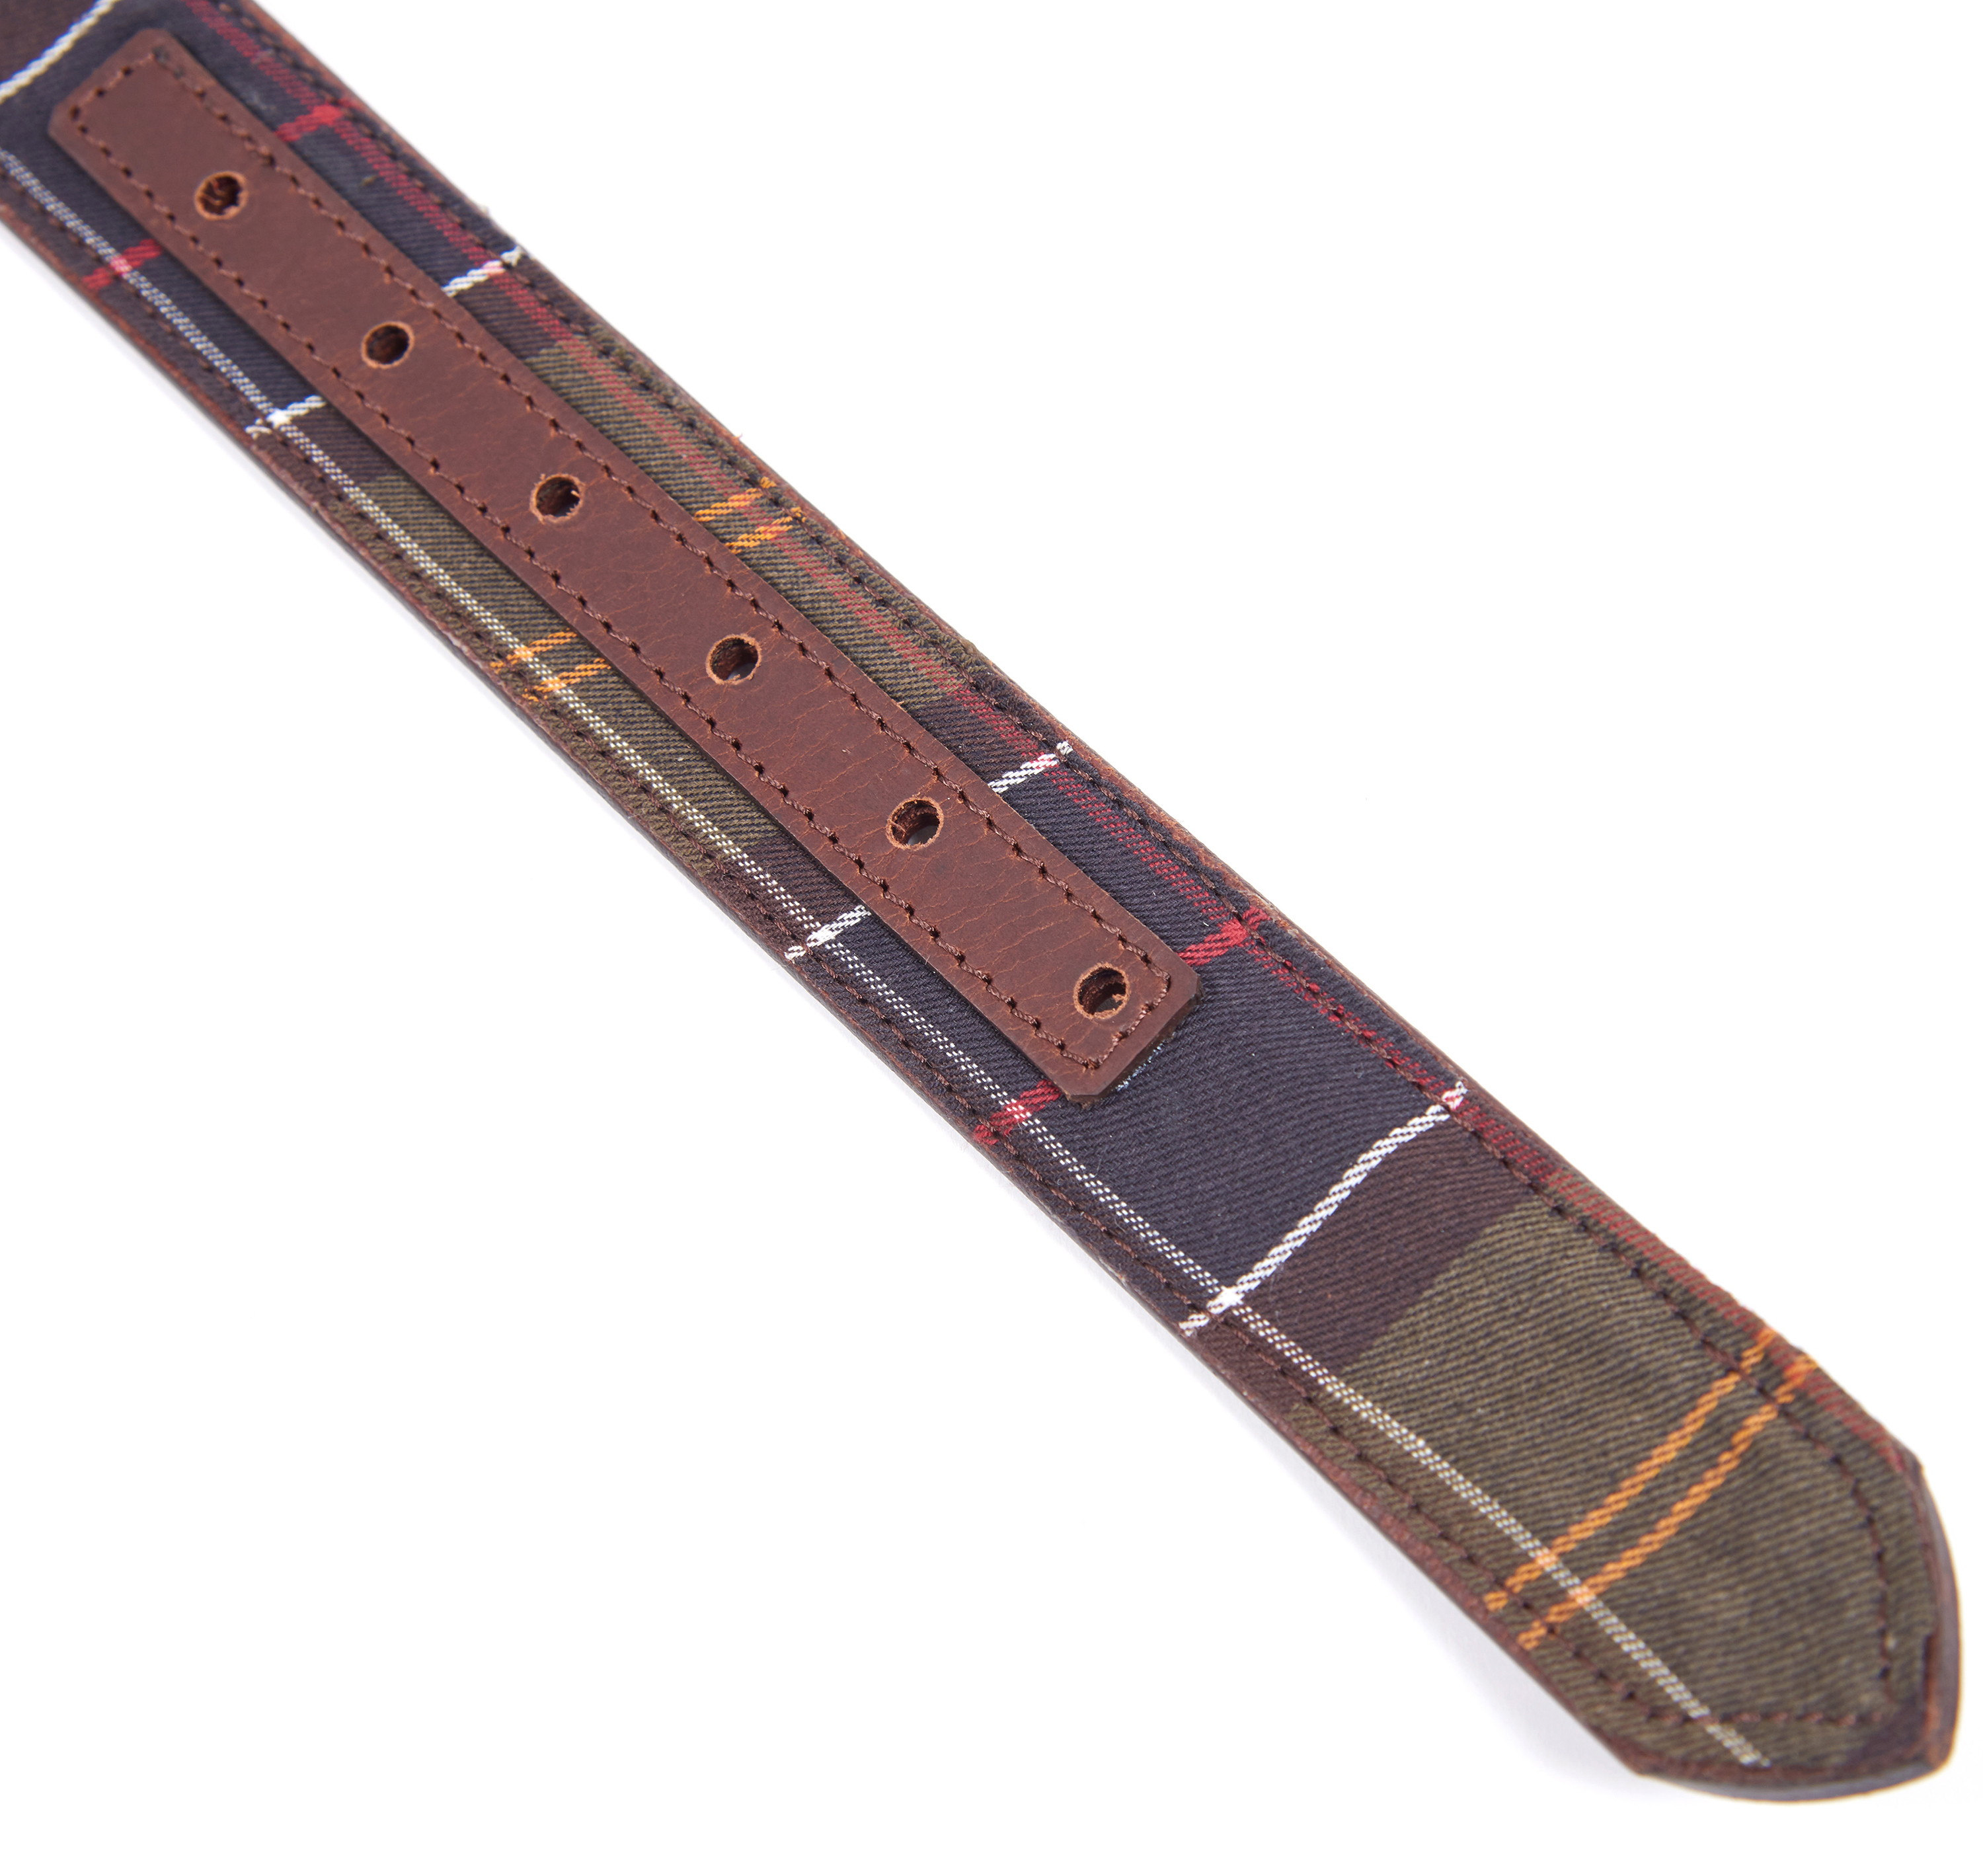 Barbour Reversible Leather Belt Tartan